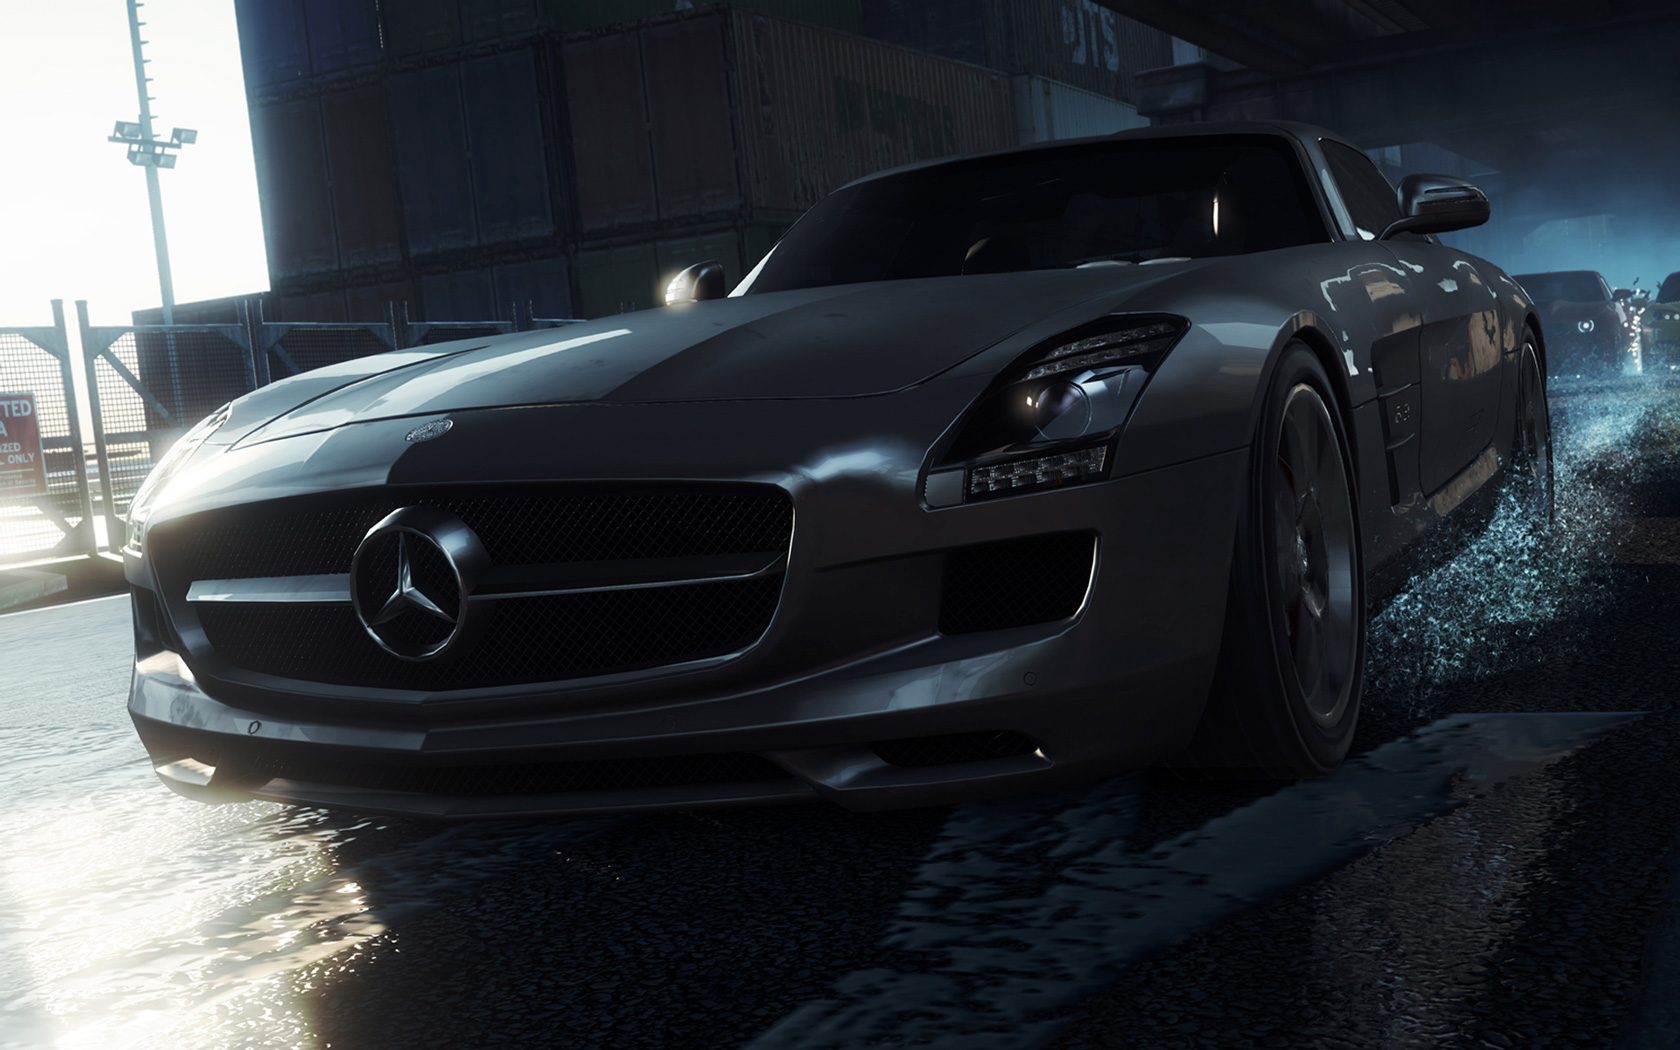 Free Need for Speed: Most Wanted (2012) Wallpaper in 1680x1050